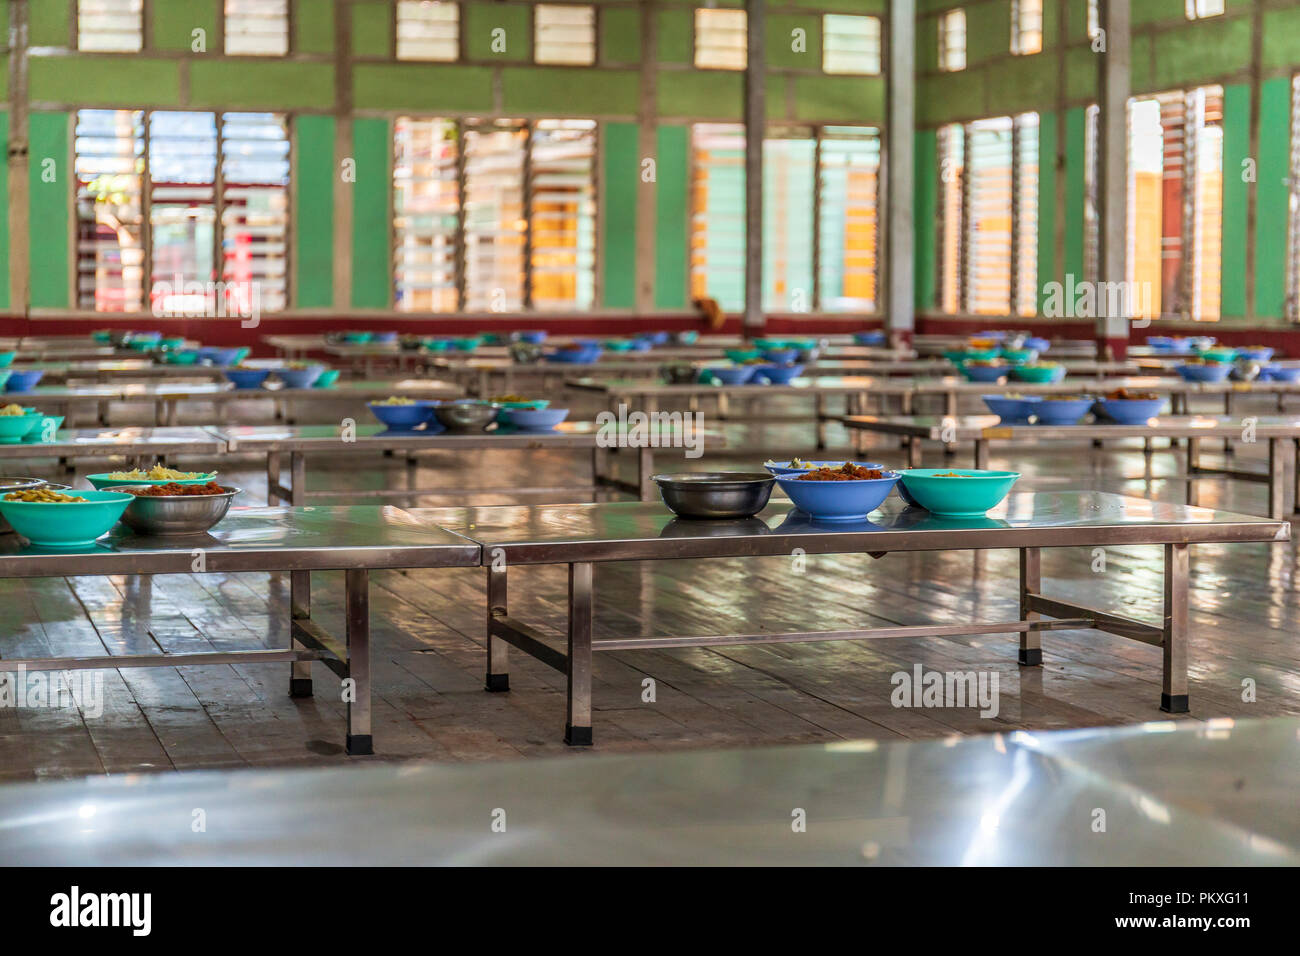 Decked tables waiting for monks at Mahagandayon monastery, Myanmar. - Stock Image